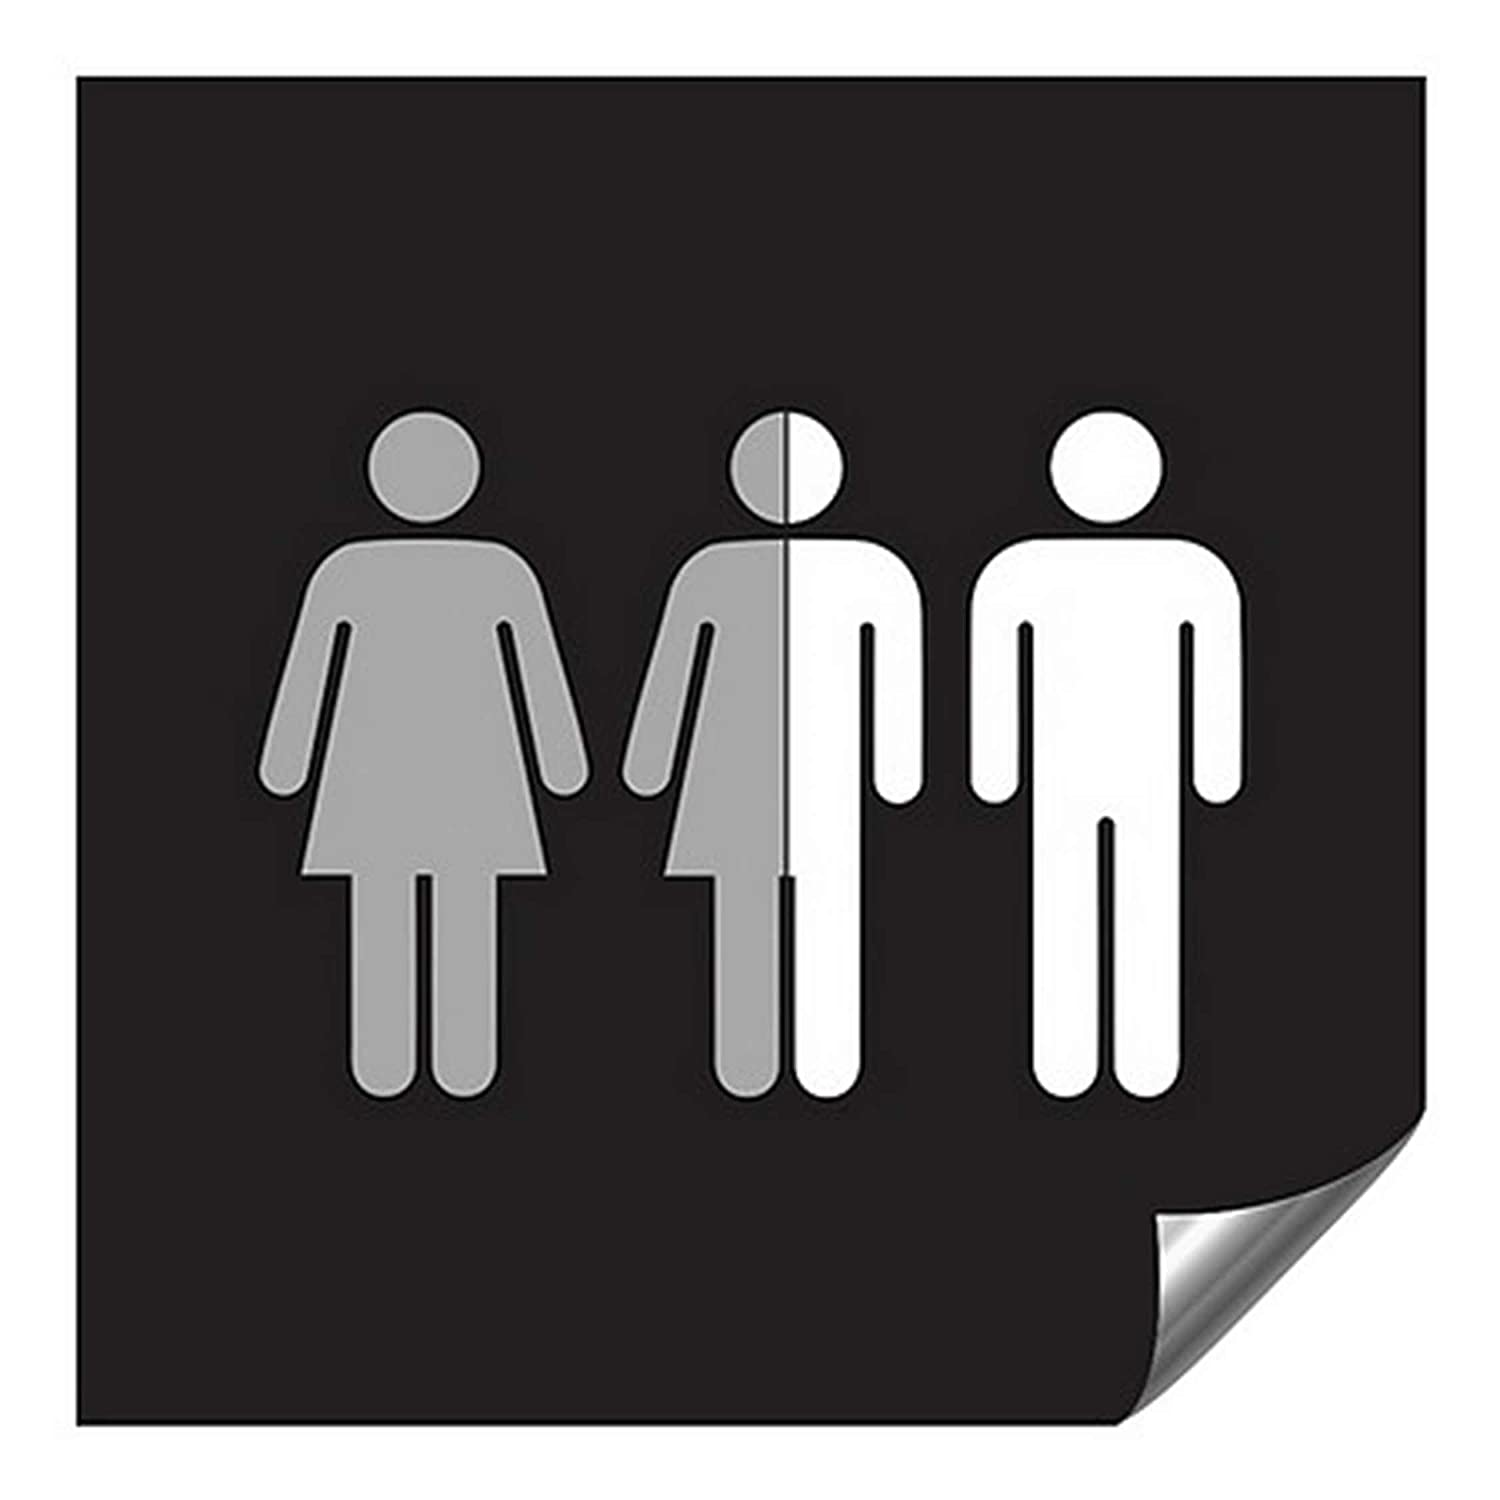 CGSignLab 2439184_5gfxa_24x24_None Gender Neutral Sign in Black and White Heavy-Duty Industrial Self-Adhesive Aluminum Wall Decal, Aluminum, 24